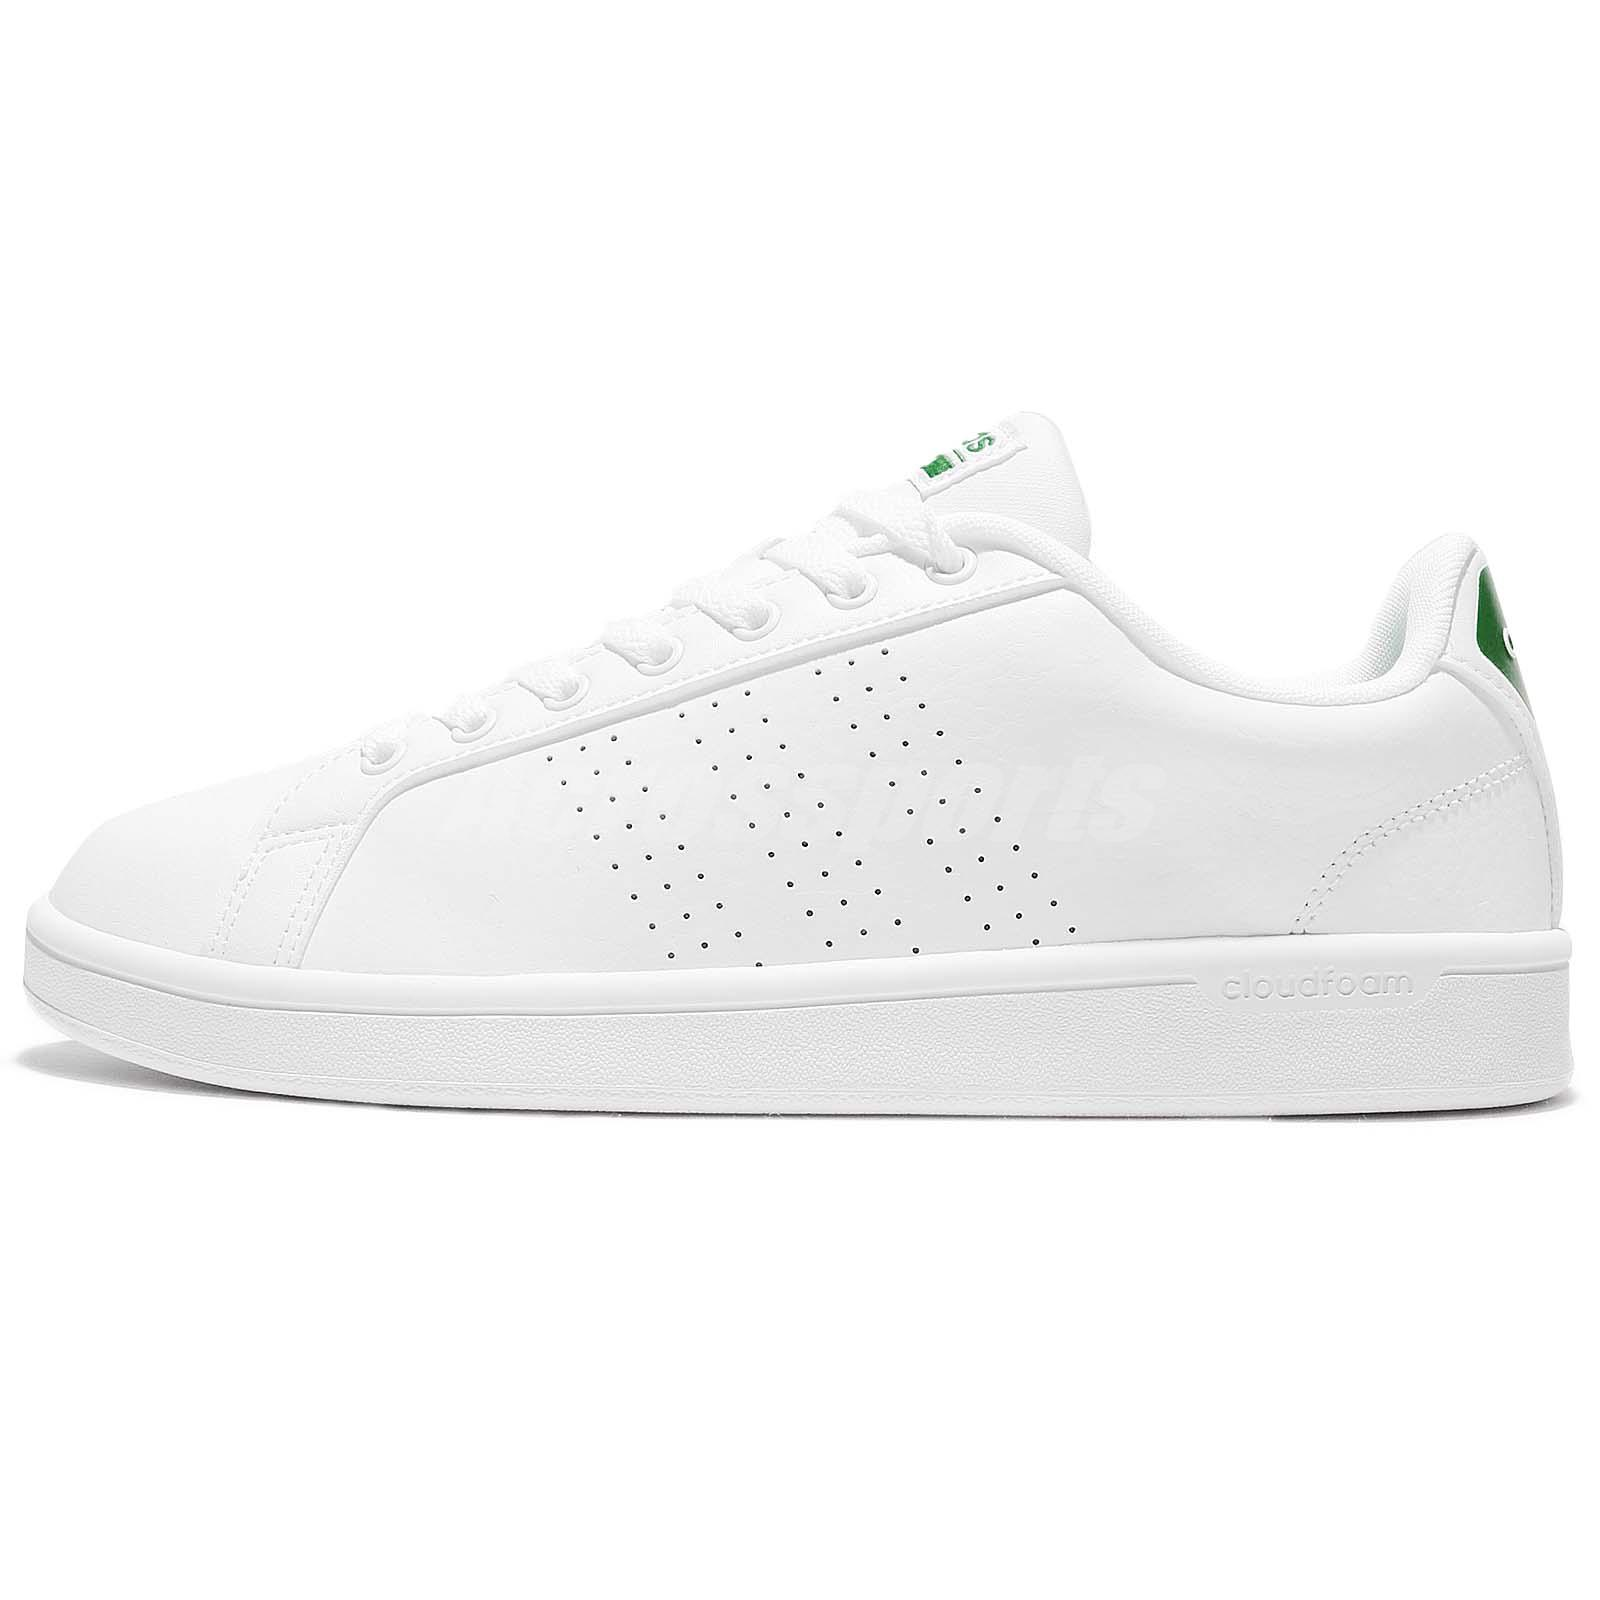 the latest 882ec f2b93 ... sweden adidas neo cloudfoam advantage clean white green leather men shoe  sneaker aw3914 b3be9 c2adc